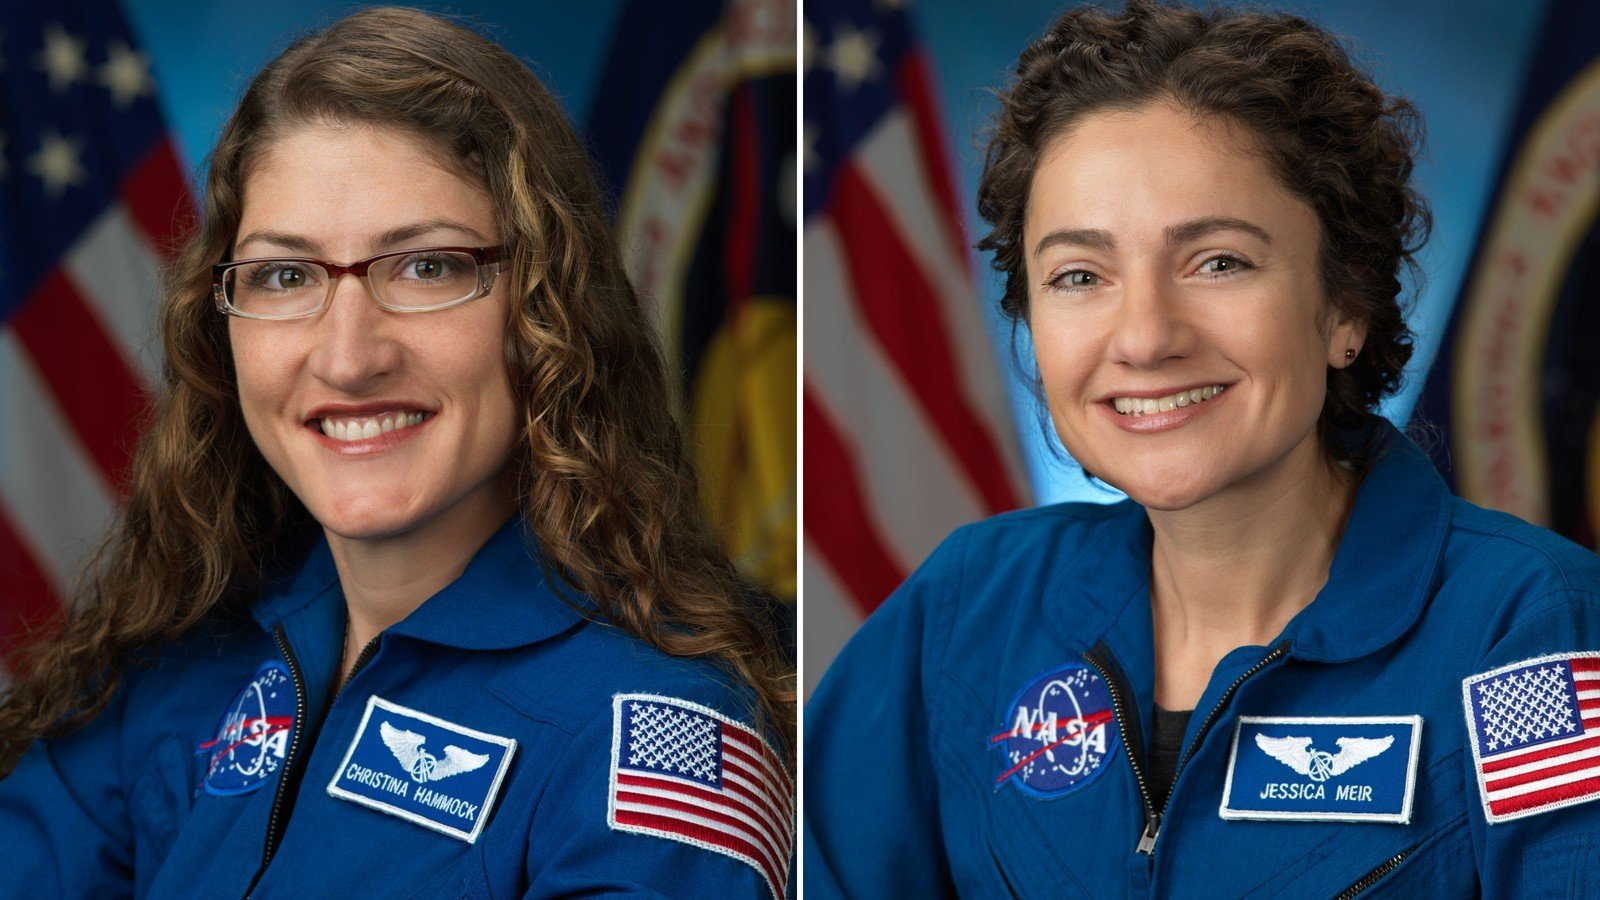 NASA astronauts Jessica Meir and Christina Koch will conduct the first all-female spacewalk outside of the International Space Station. (Credit: NASA)